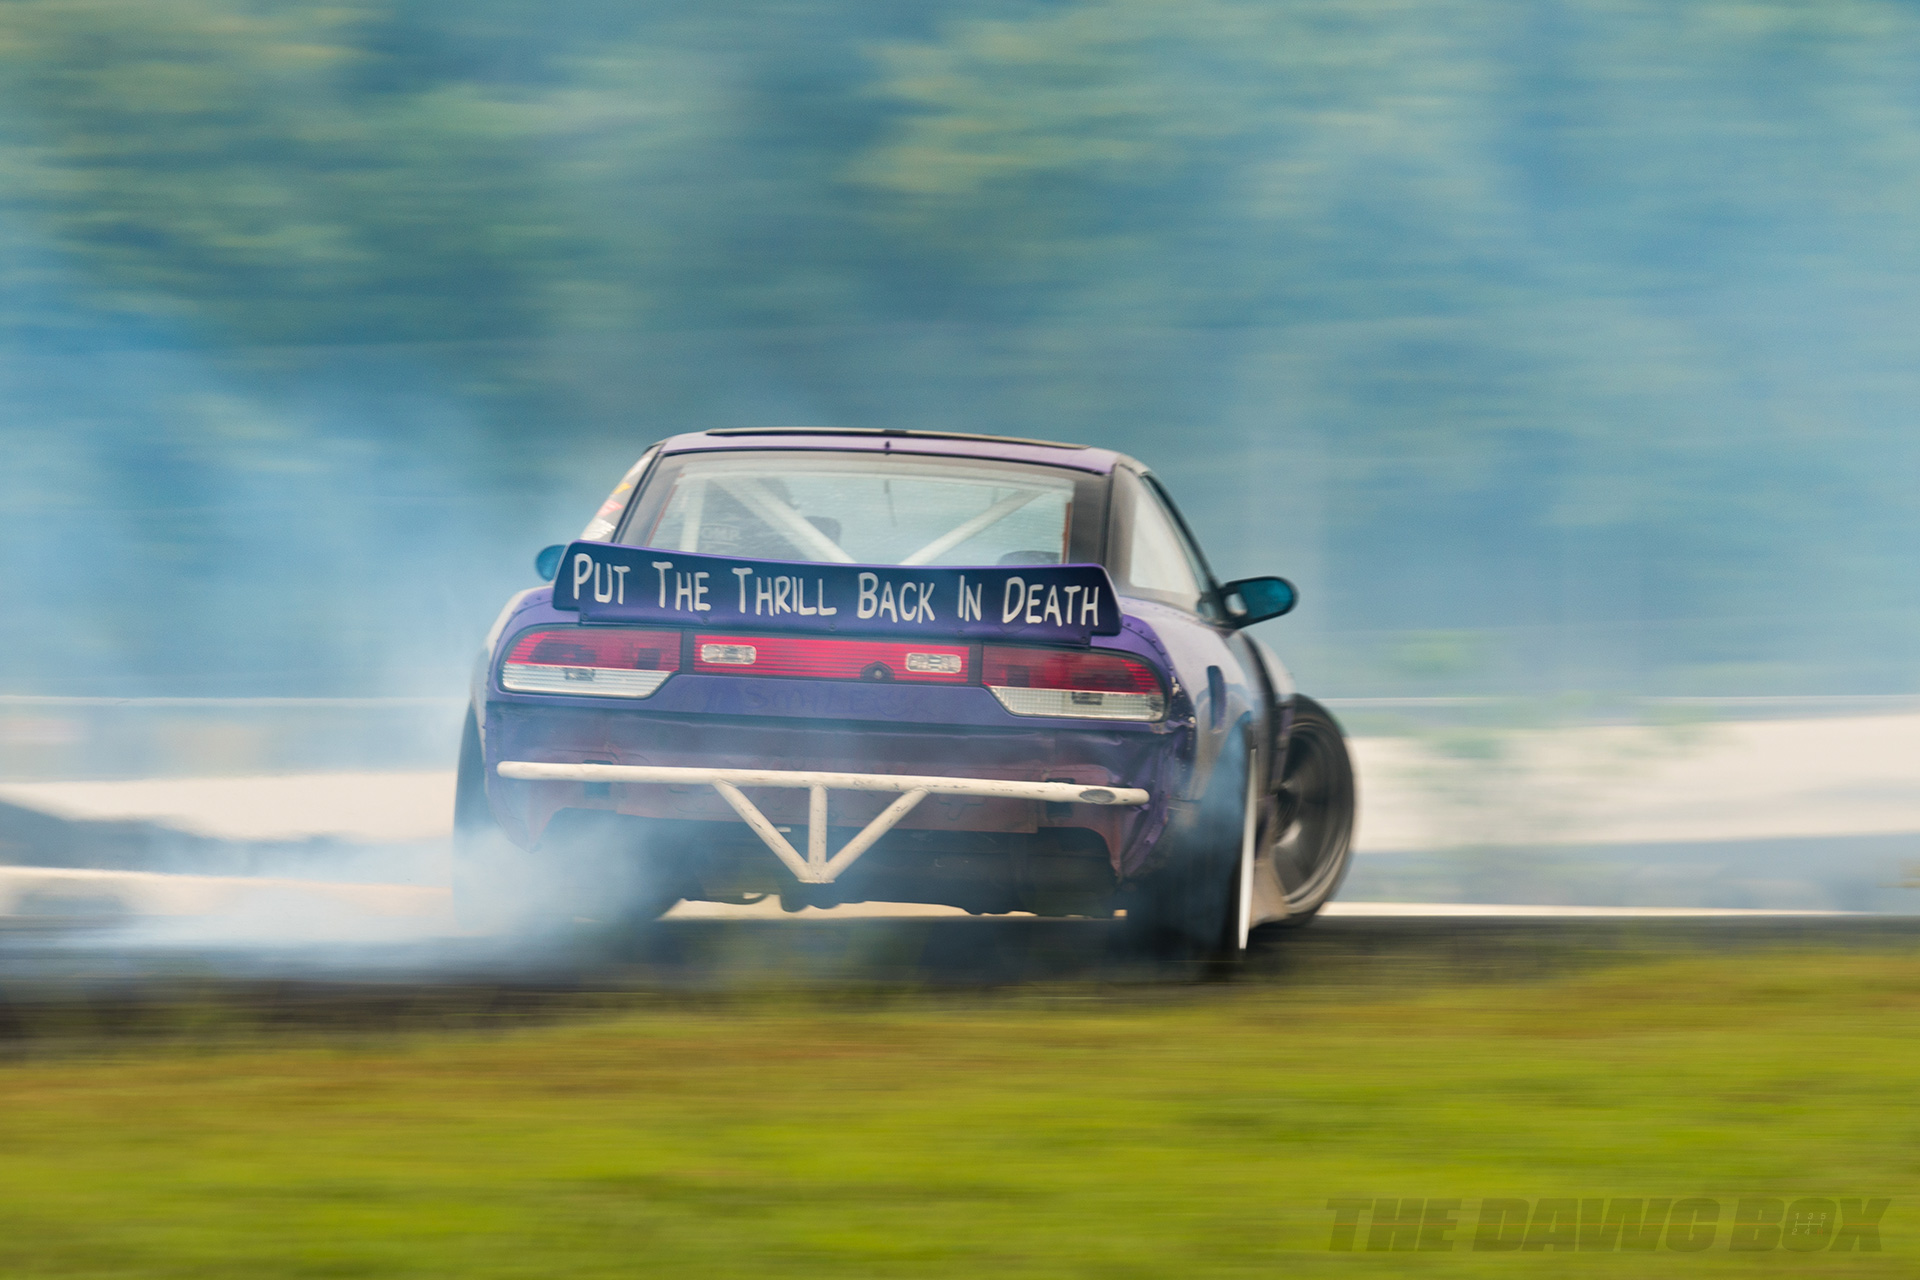 Just Loose It: The Clubloose Drifting Experience, Put The Thrill Back In Death